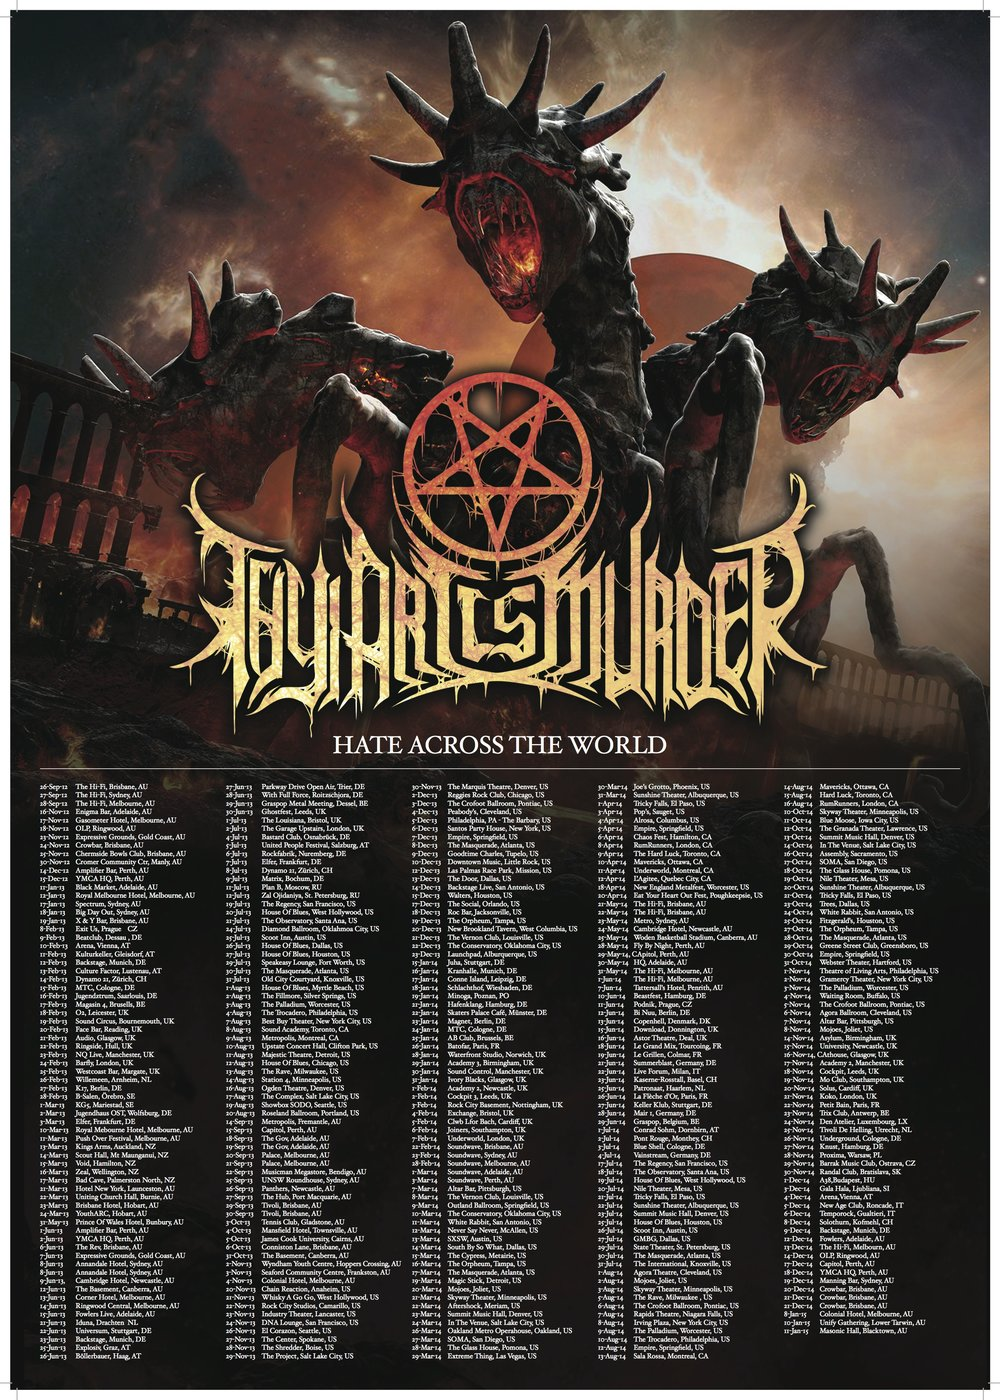 201412_Thy Art Is Murder Hate.jpg